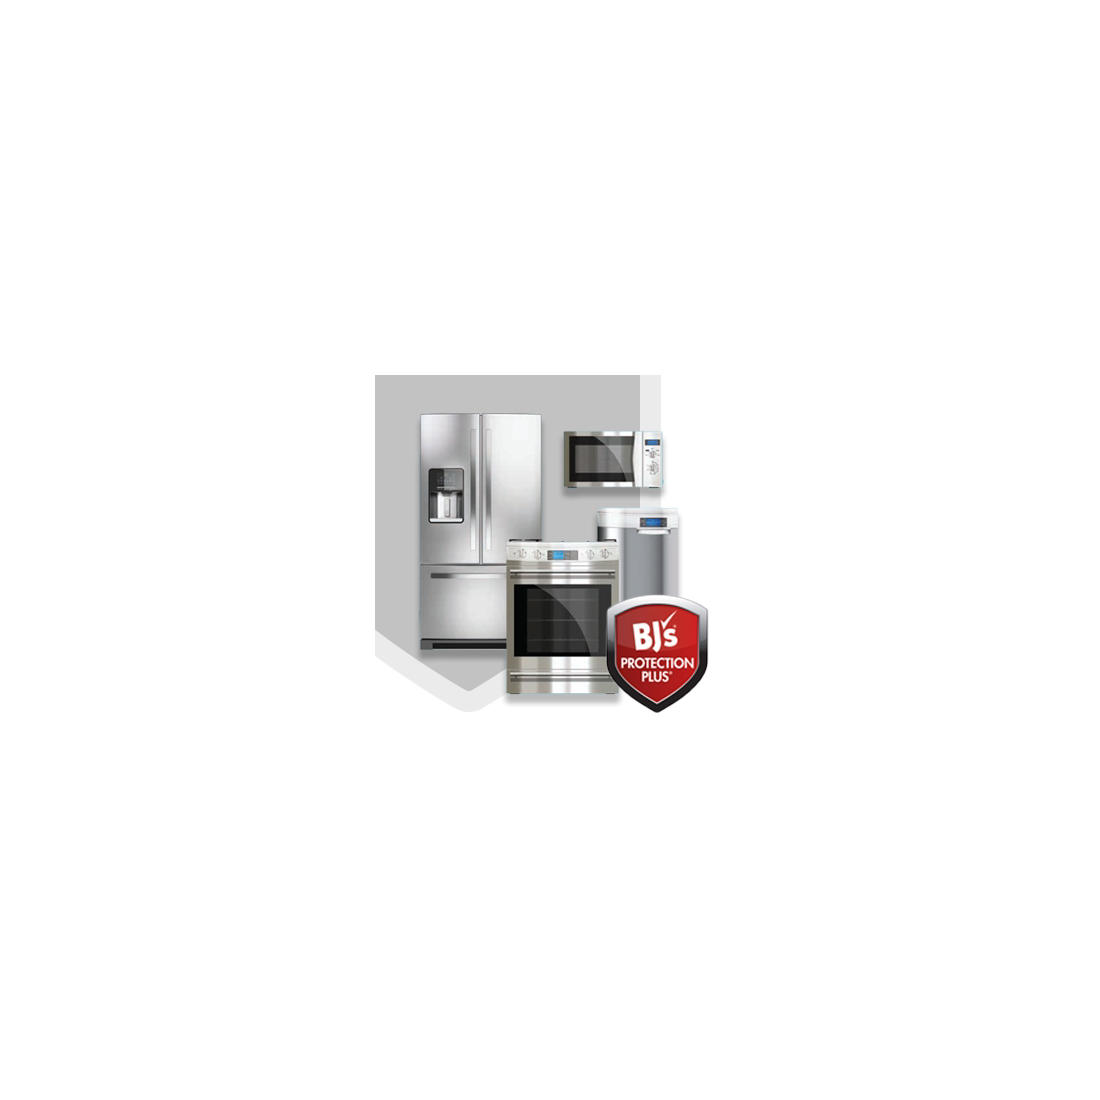 BJ's Protection Plus 4-Year Service Plan for Kitchen Suites - BJs